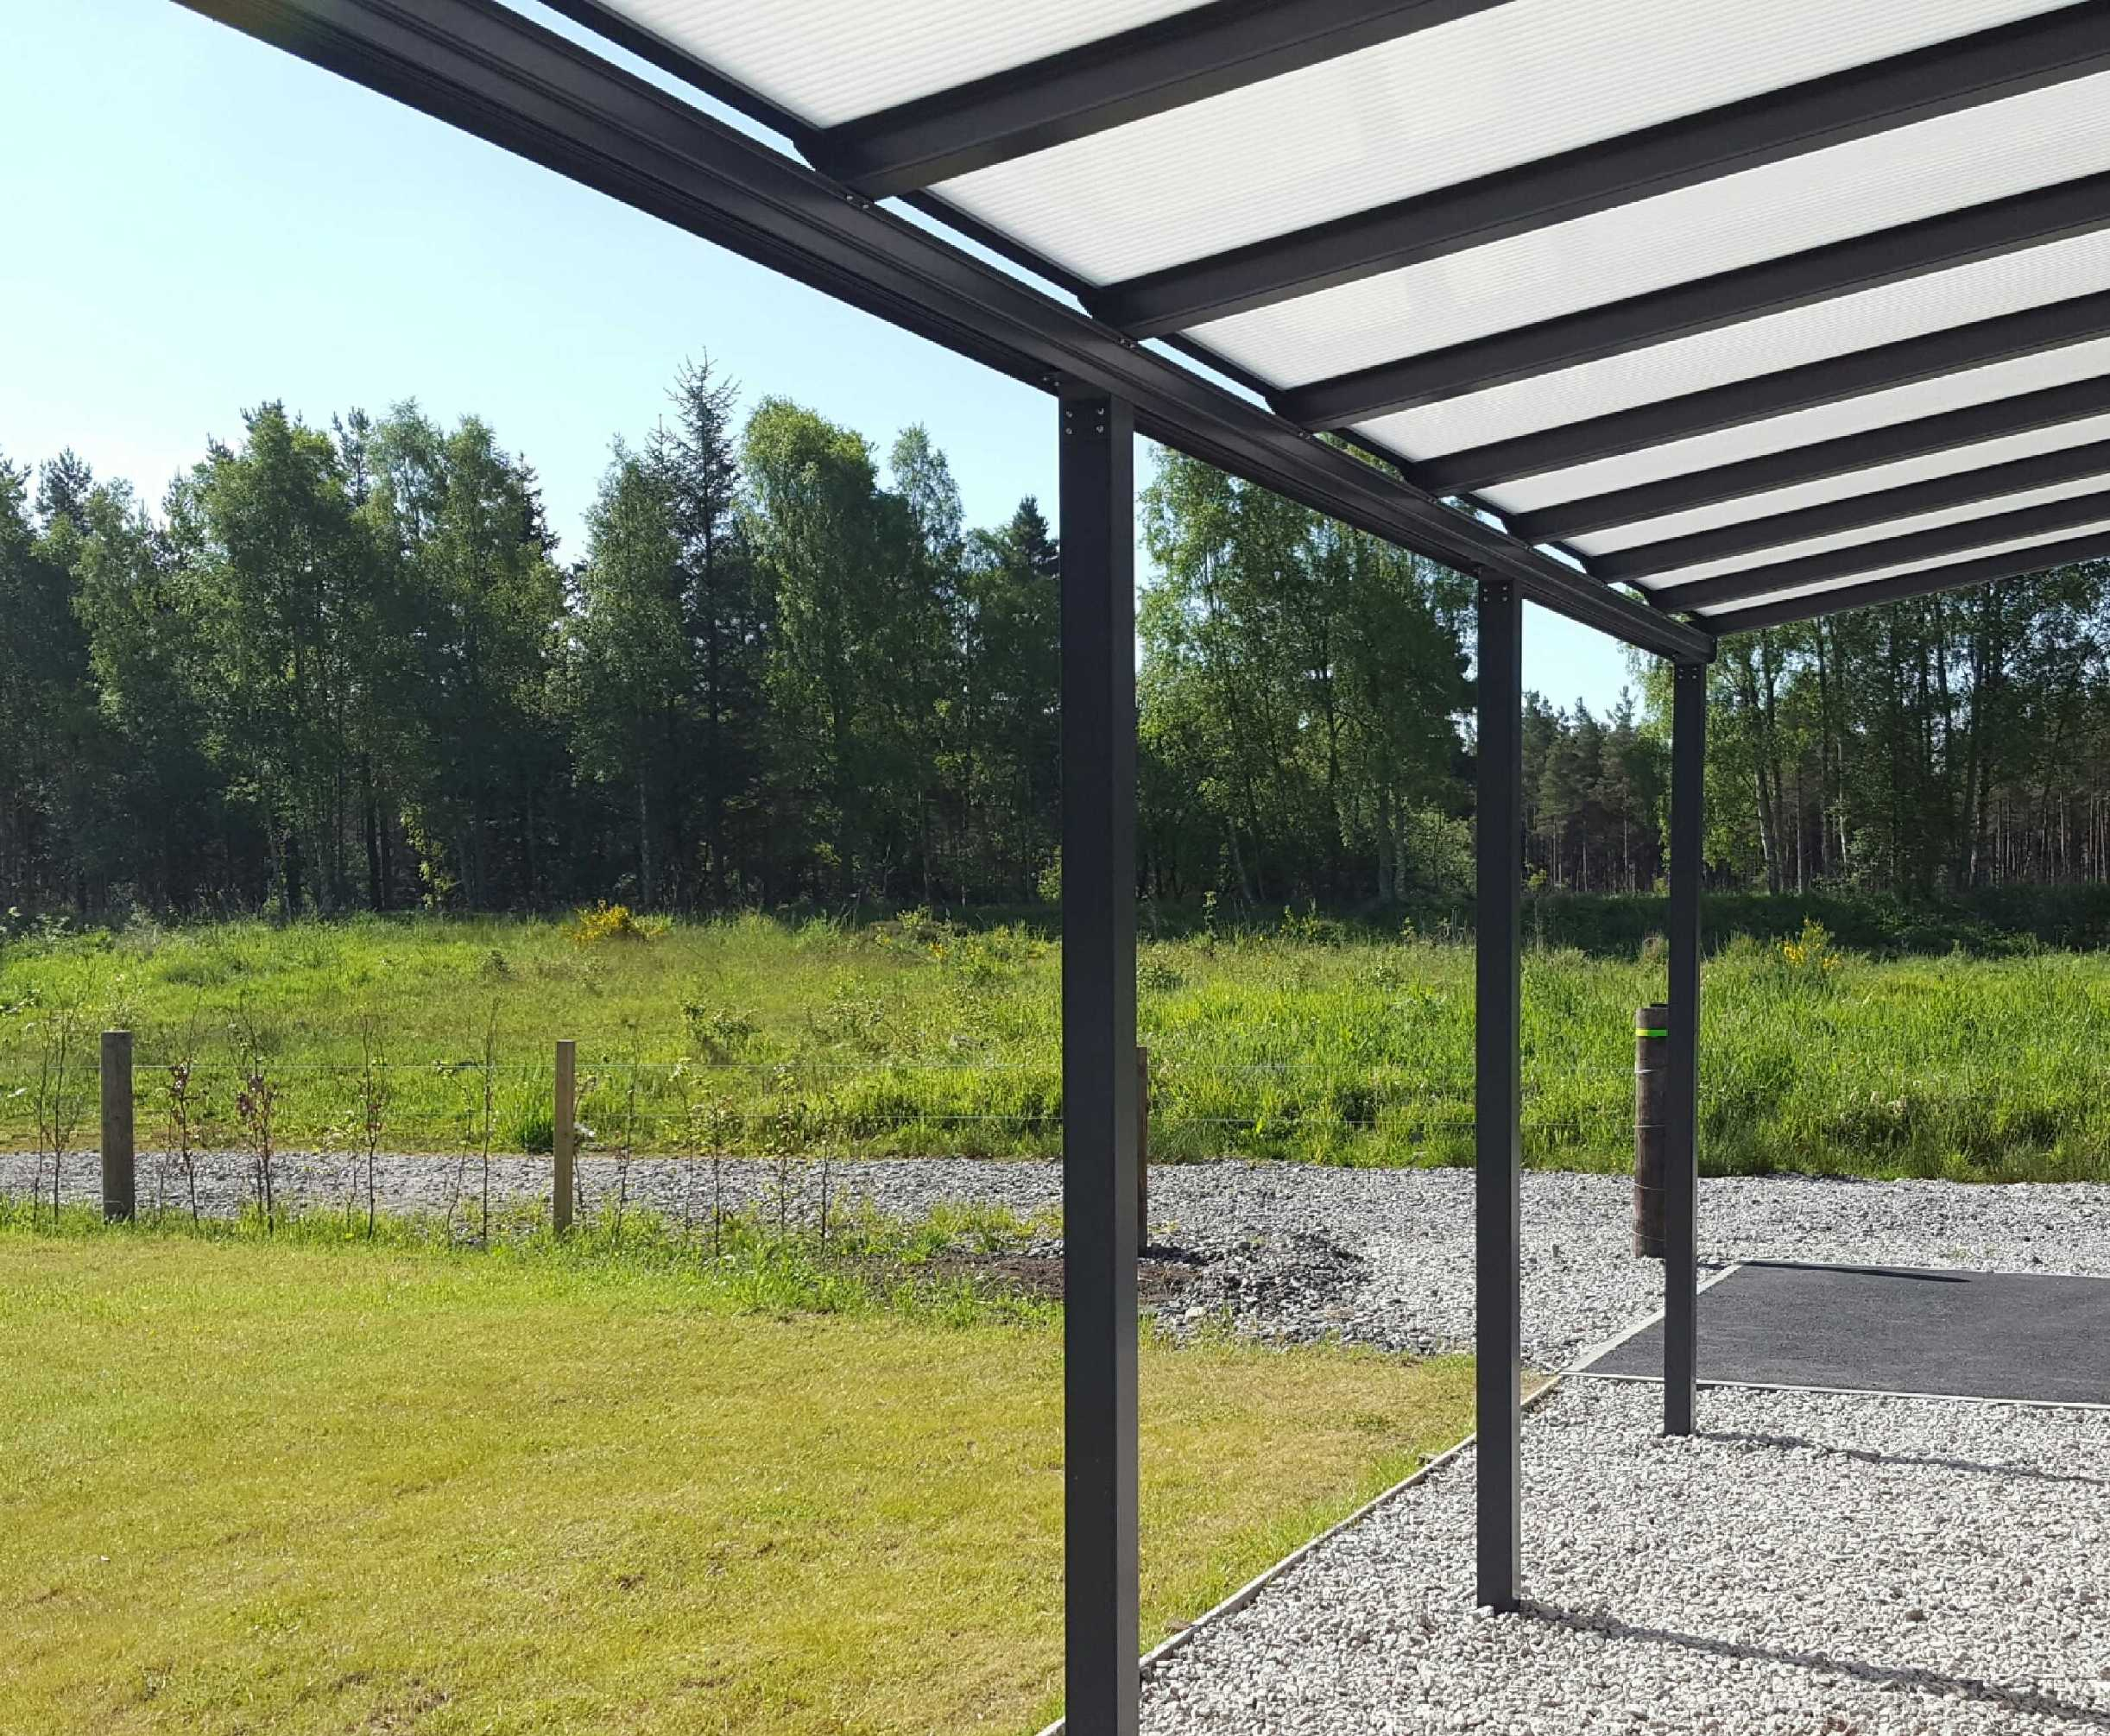 Omega Smart Lean-To Canopy, Anthracite Grey, 16mm Polycarbonate Glazing - 2.8m (W) x 3.5m (P), (2) Supporting Posts